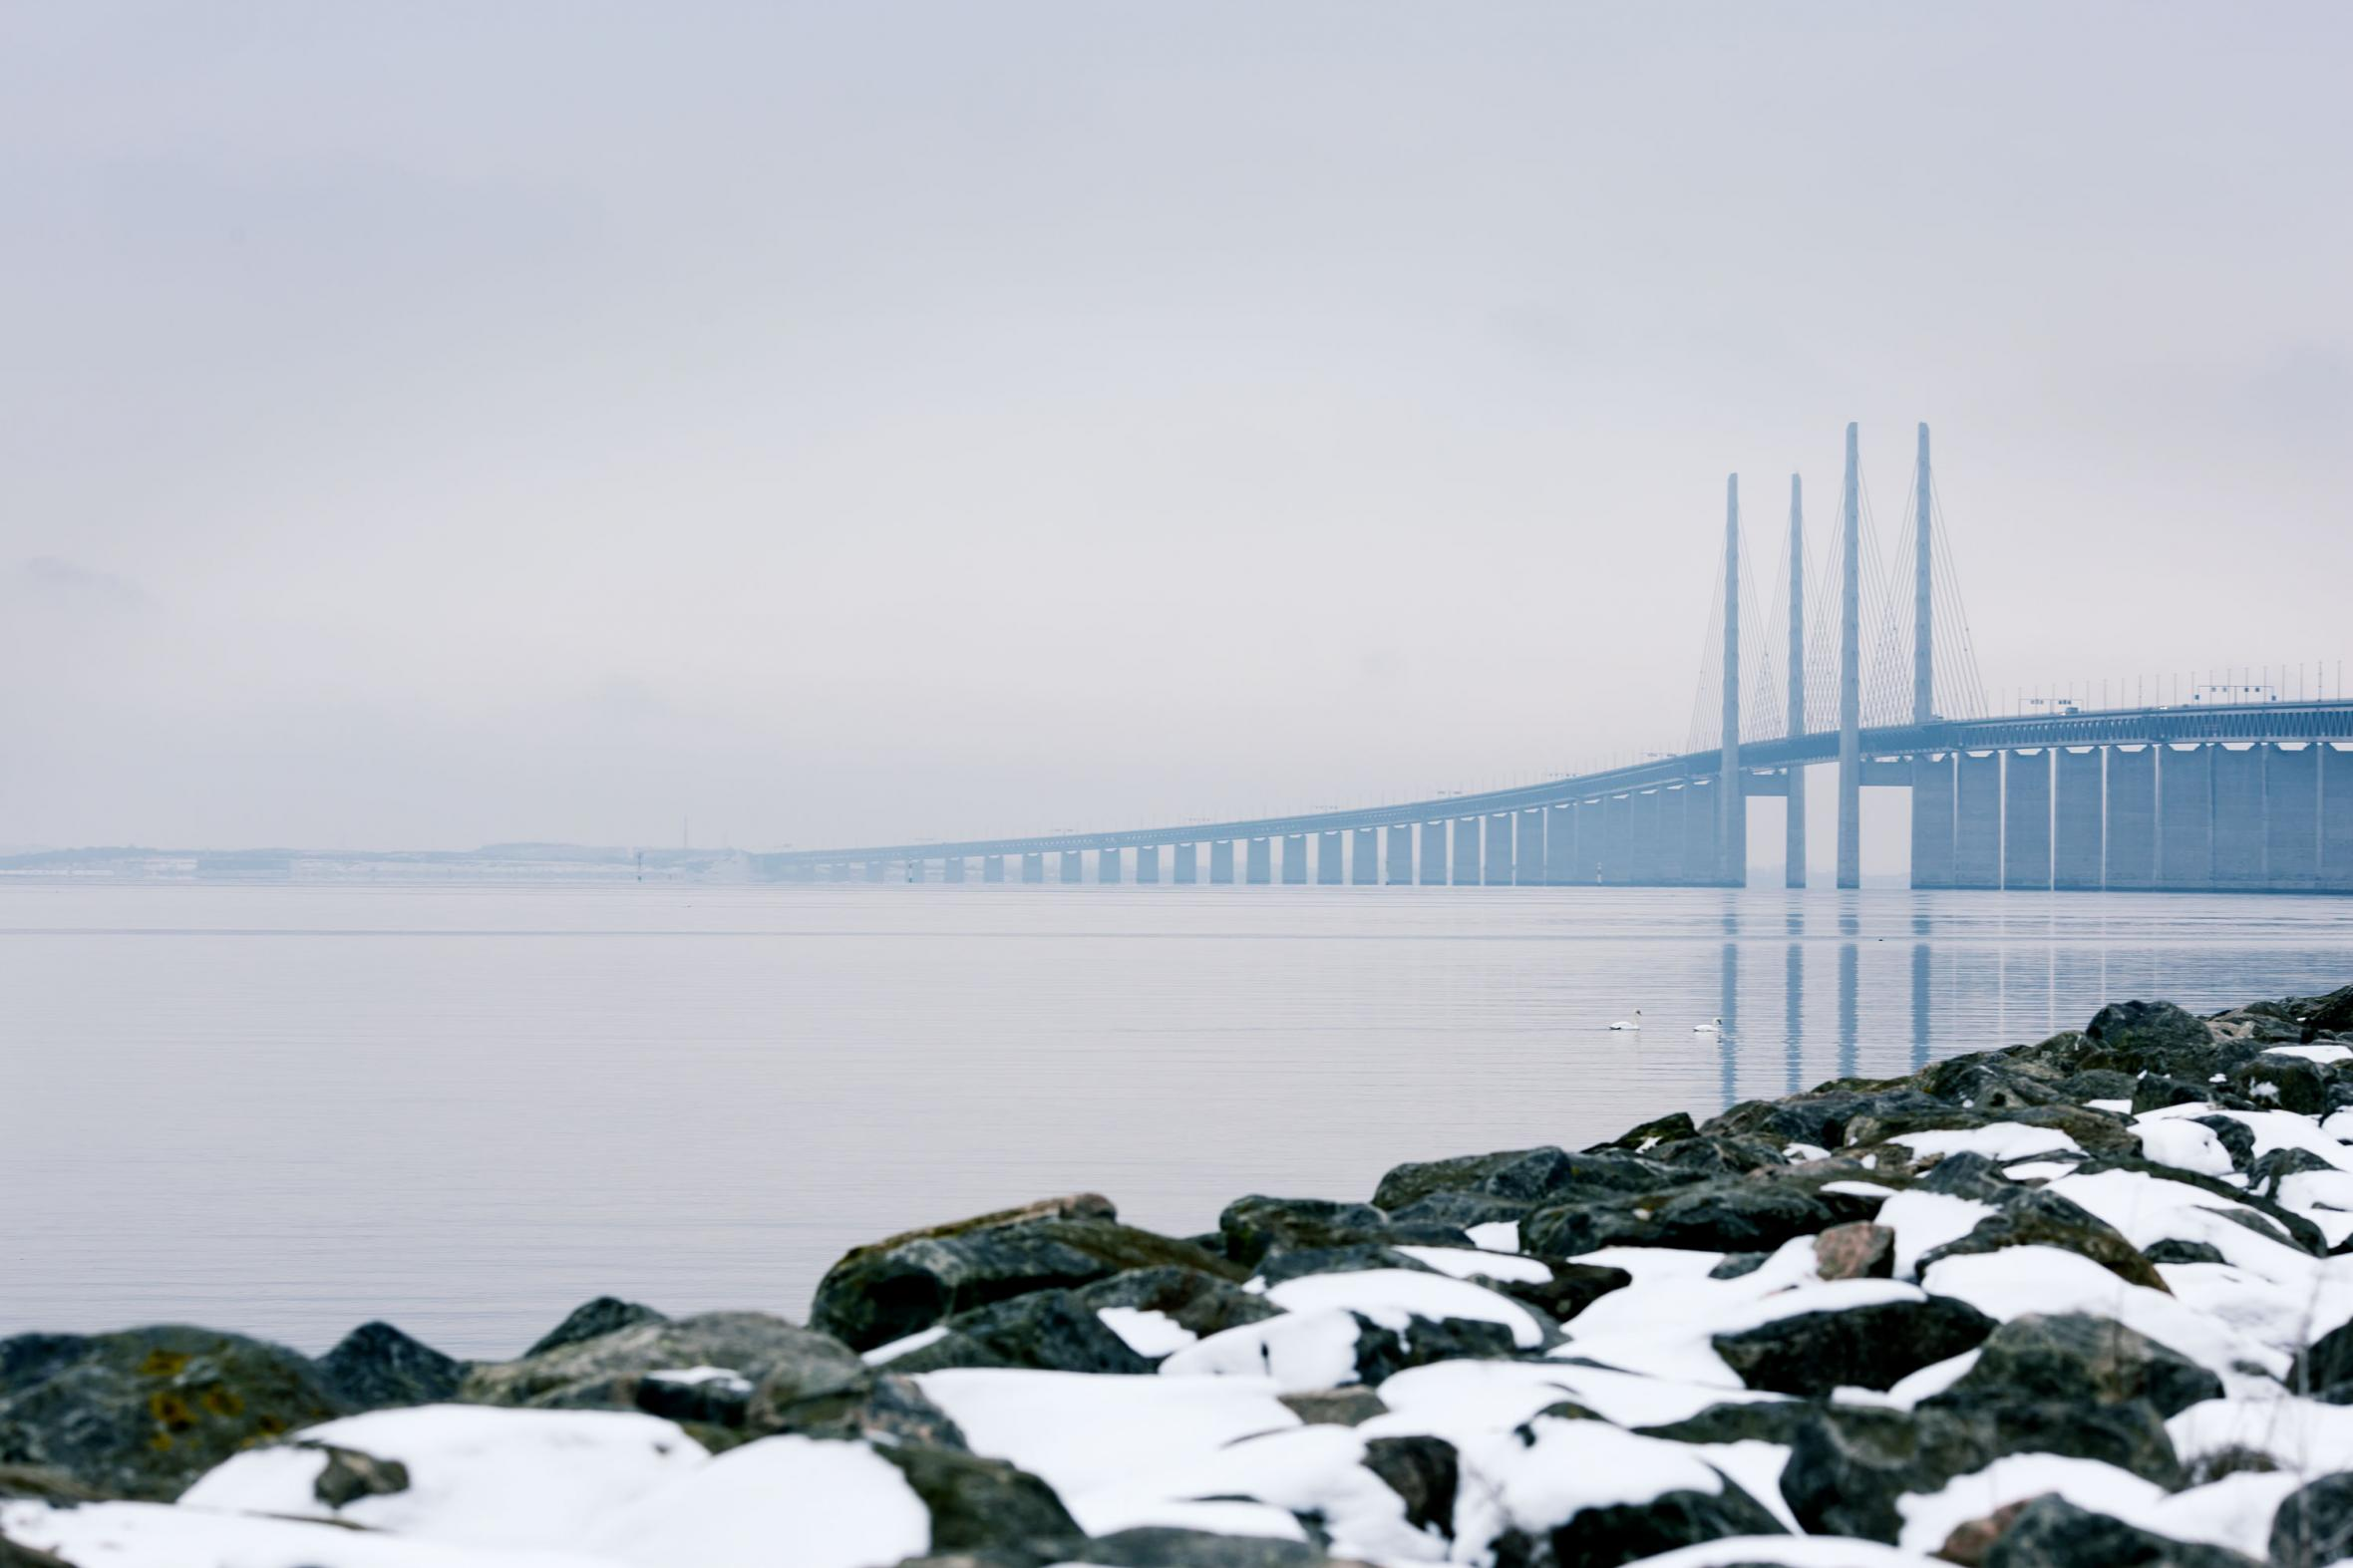 The Öresund Bridge in winter time